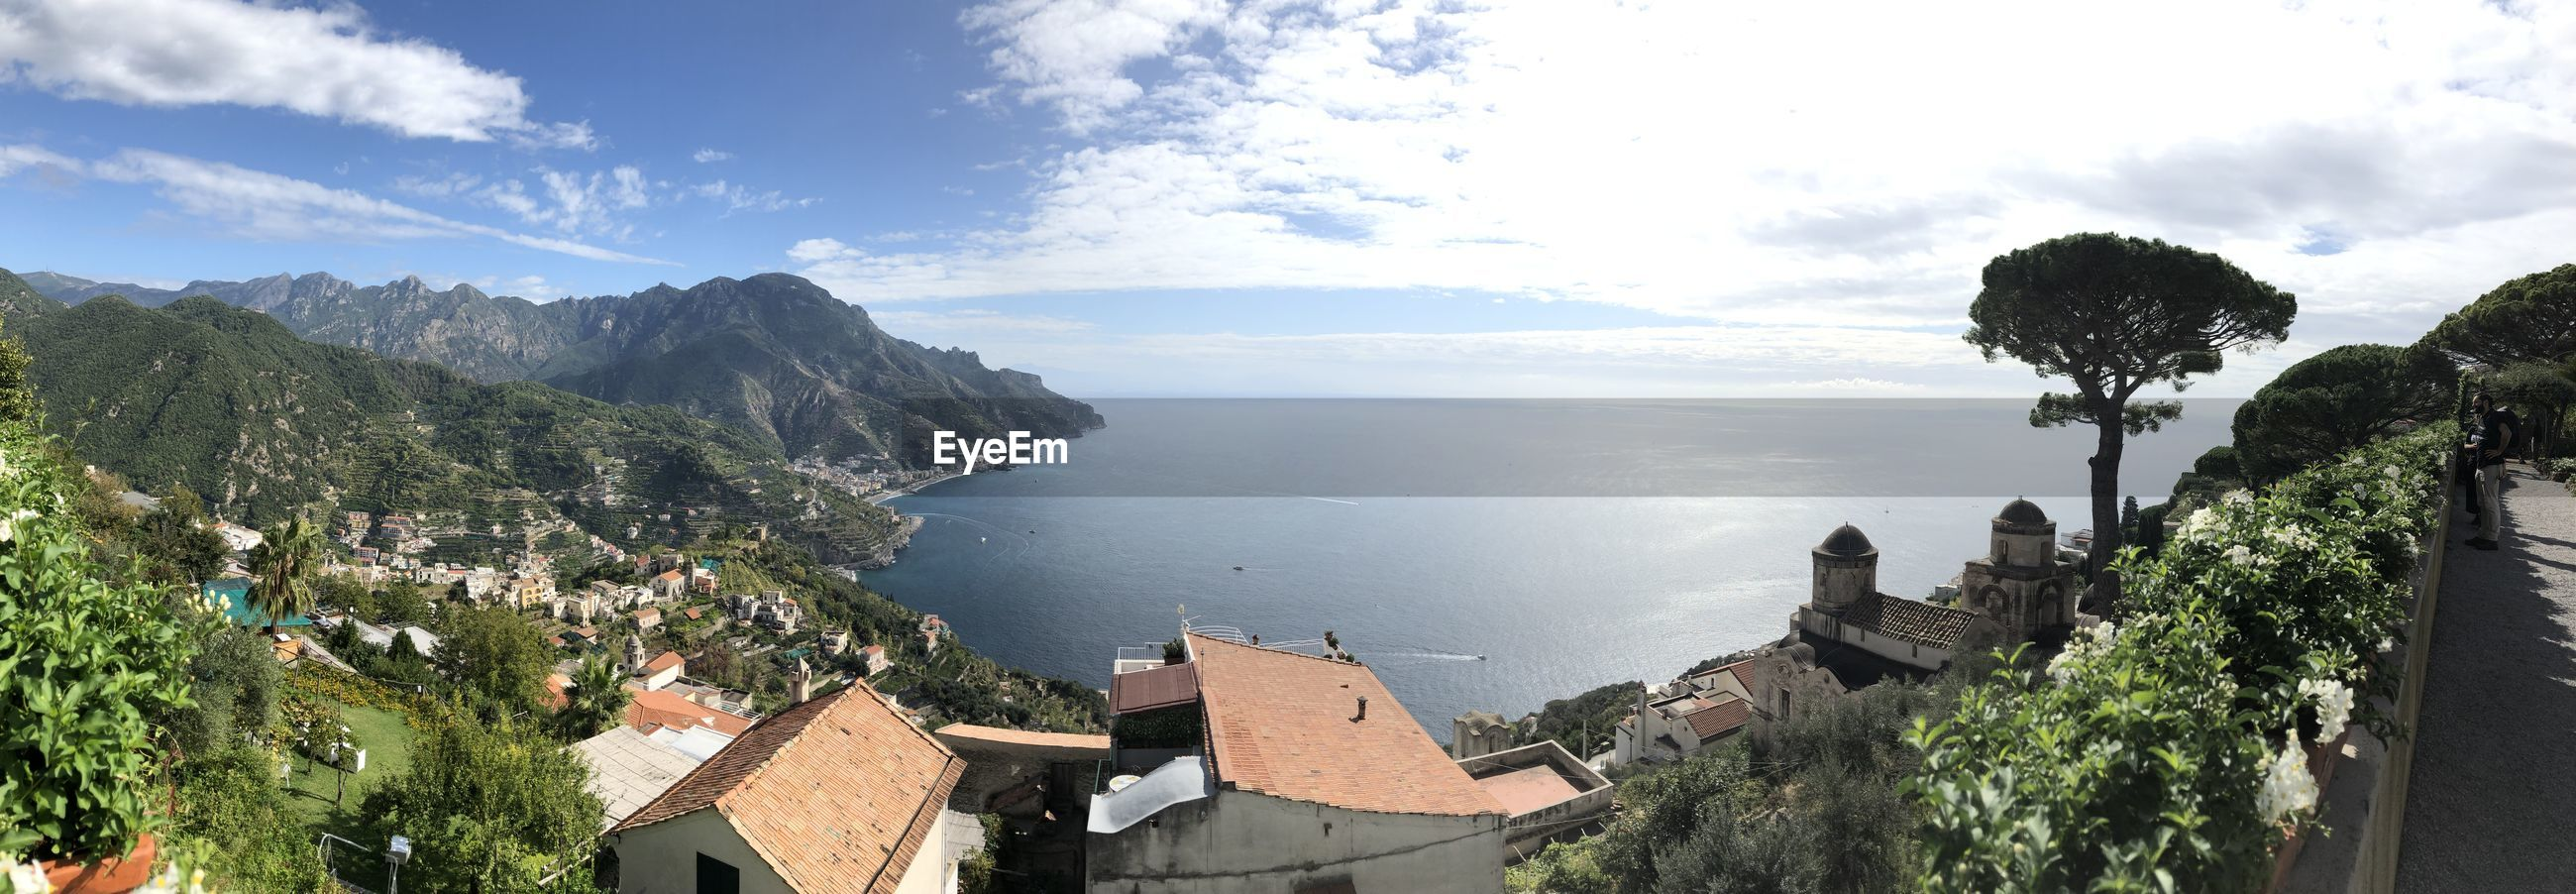 PANORAMIC VIEW OF TOWN BY SEA